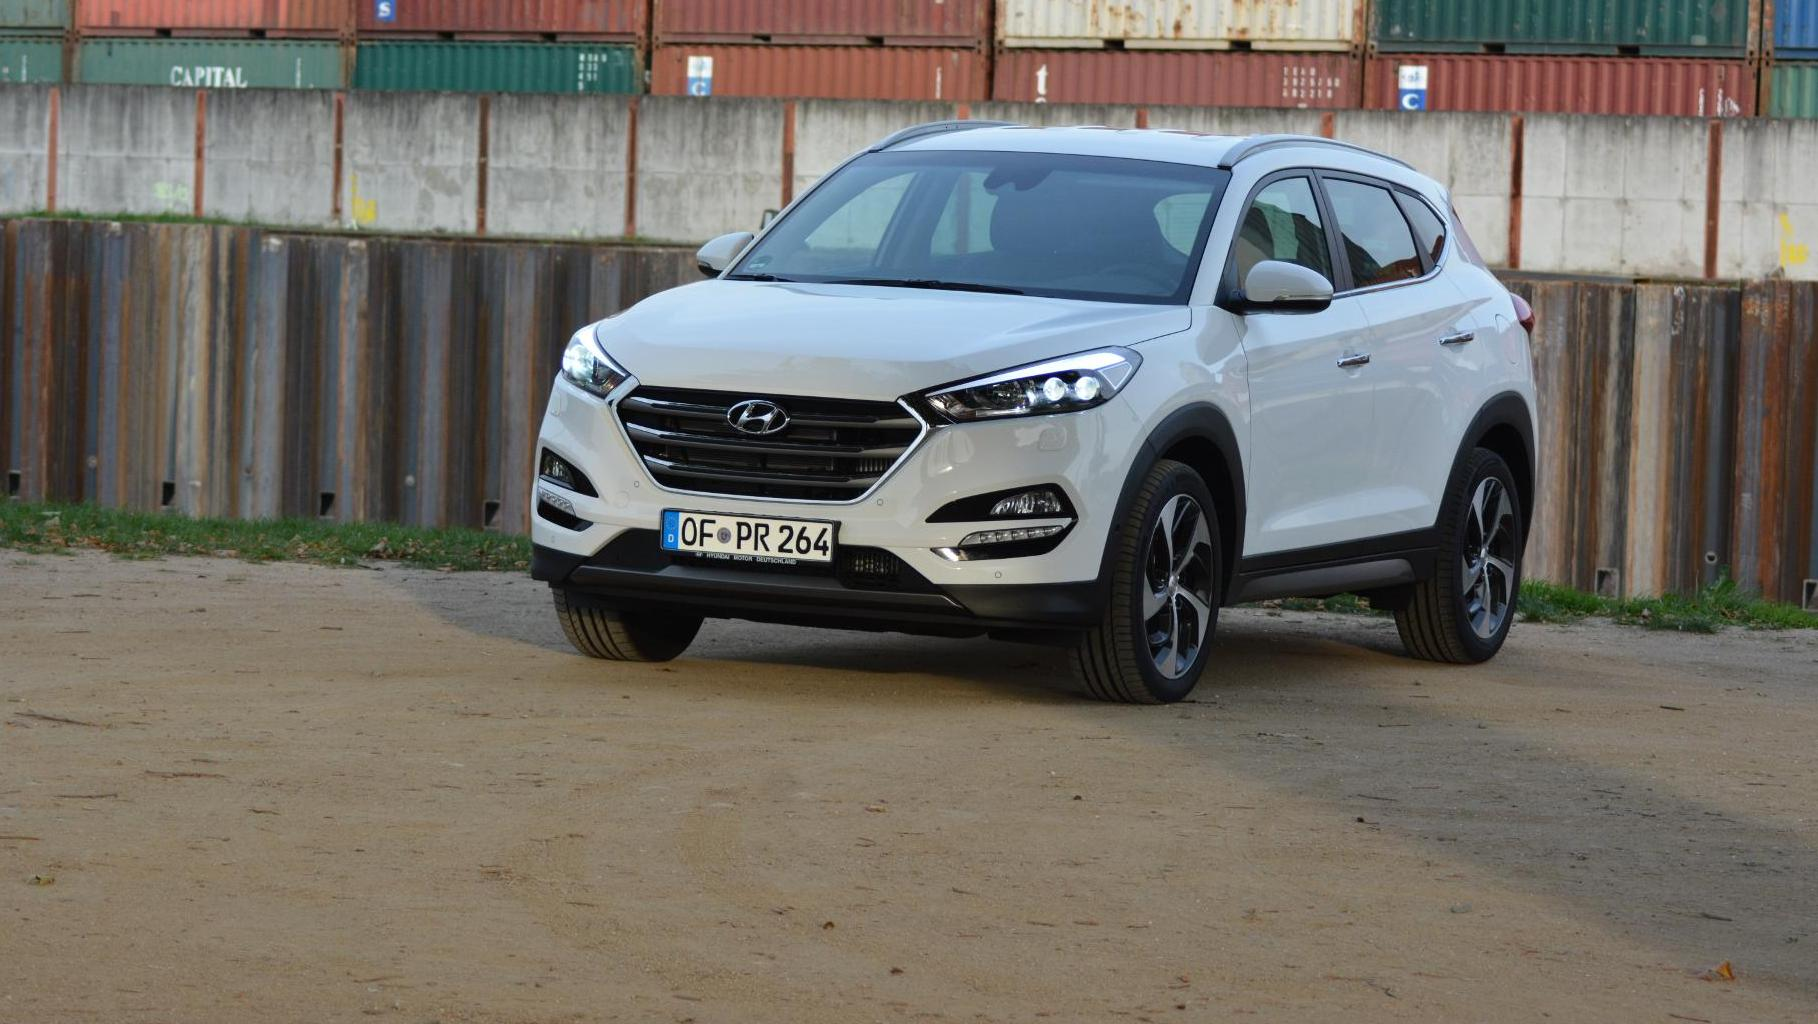 hyundai tucson im autotest koreanisches suv in guter form. Black Bedroom Furniture Sets. Home Design Ideas